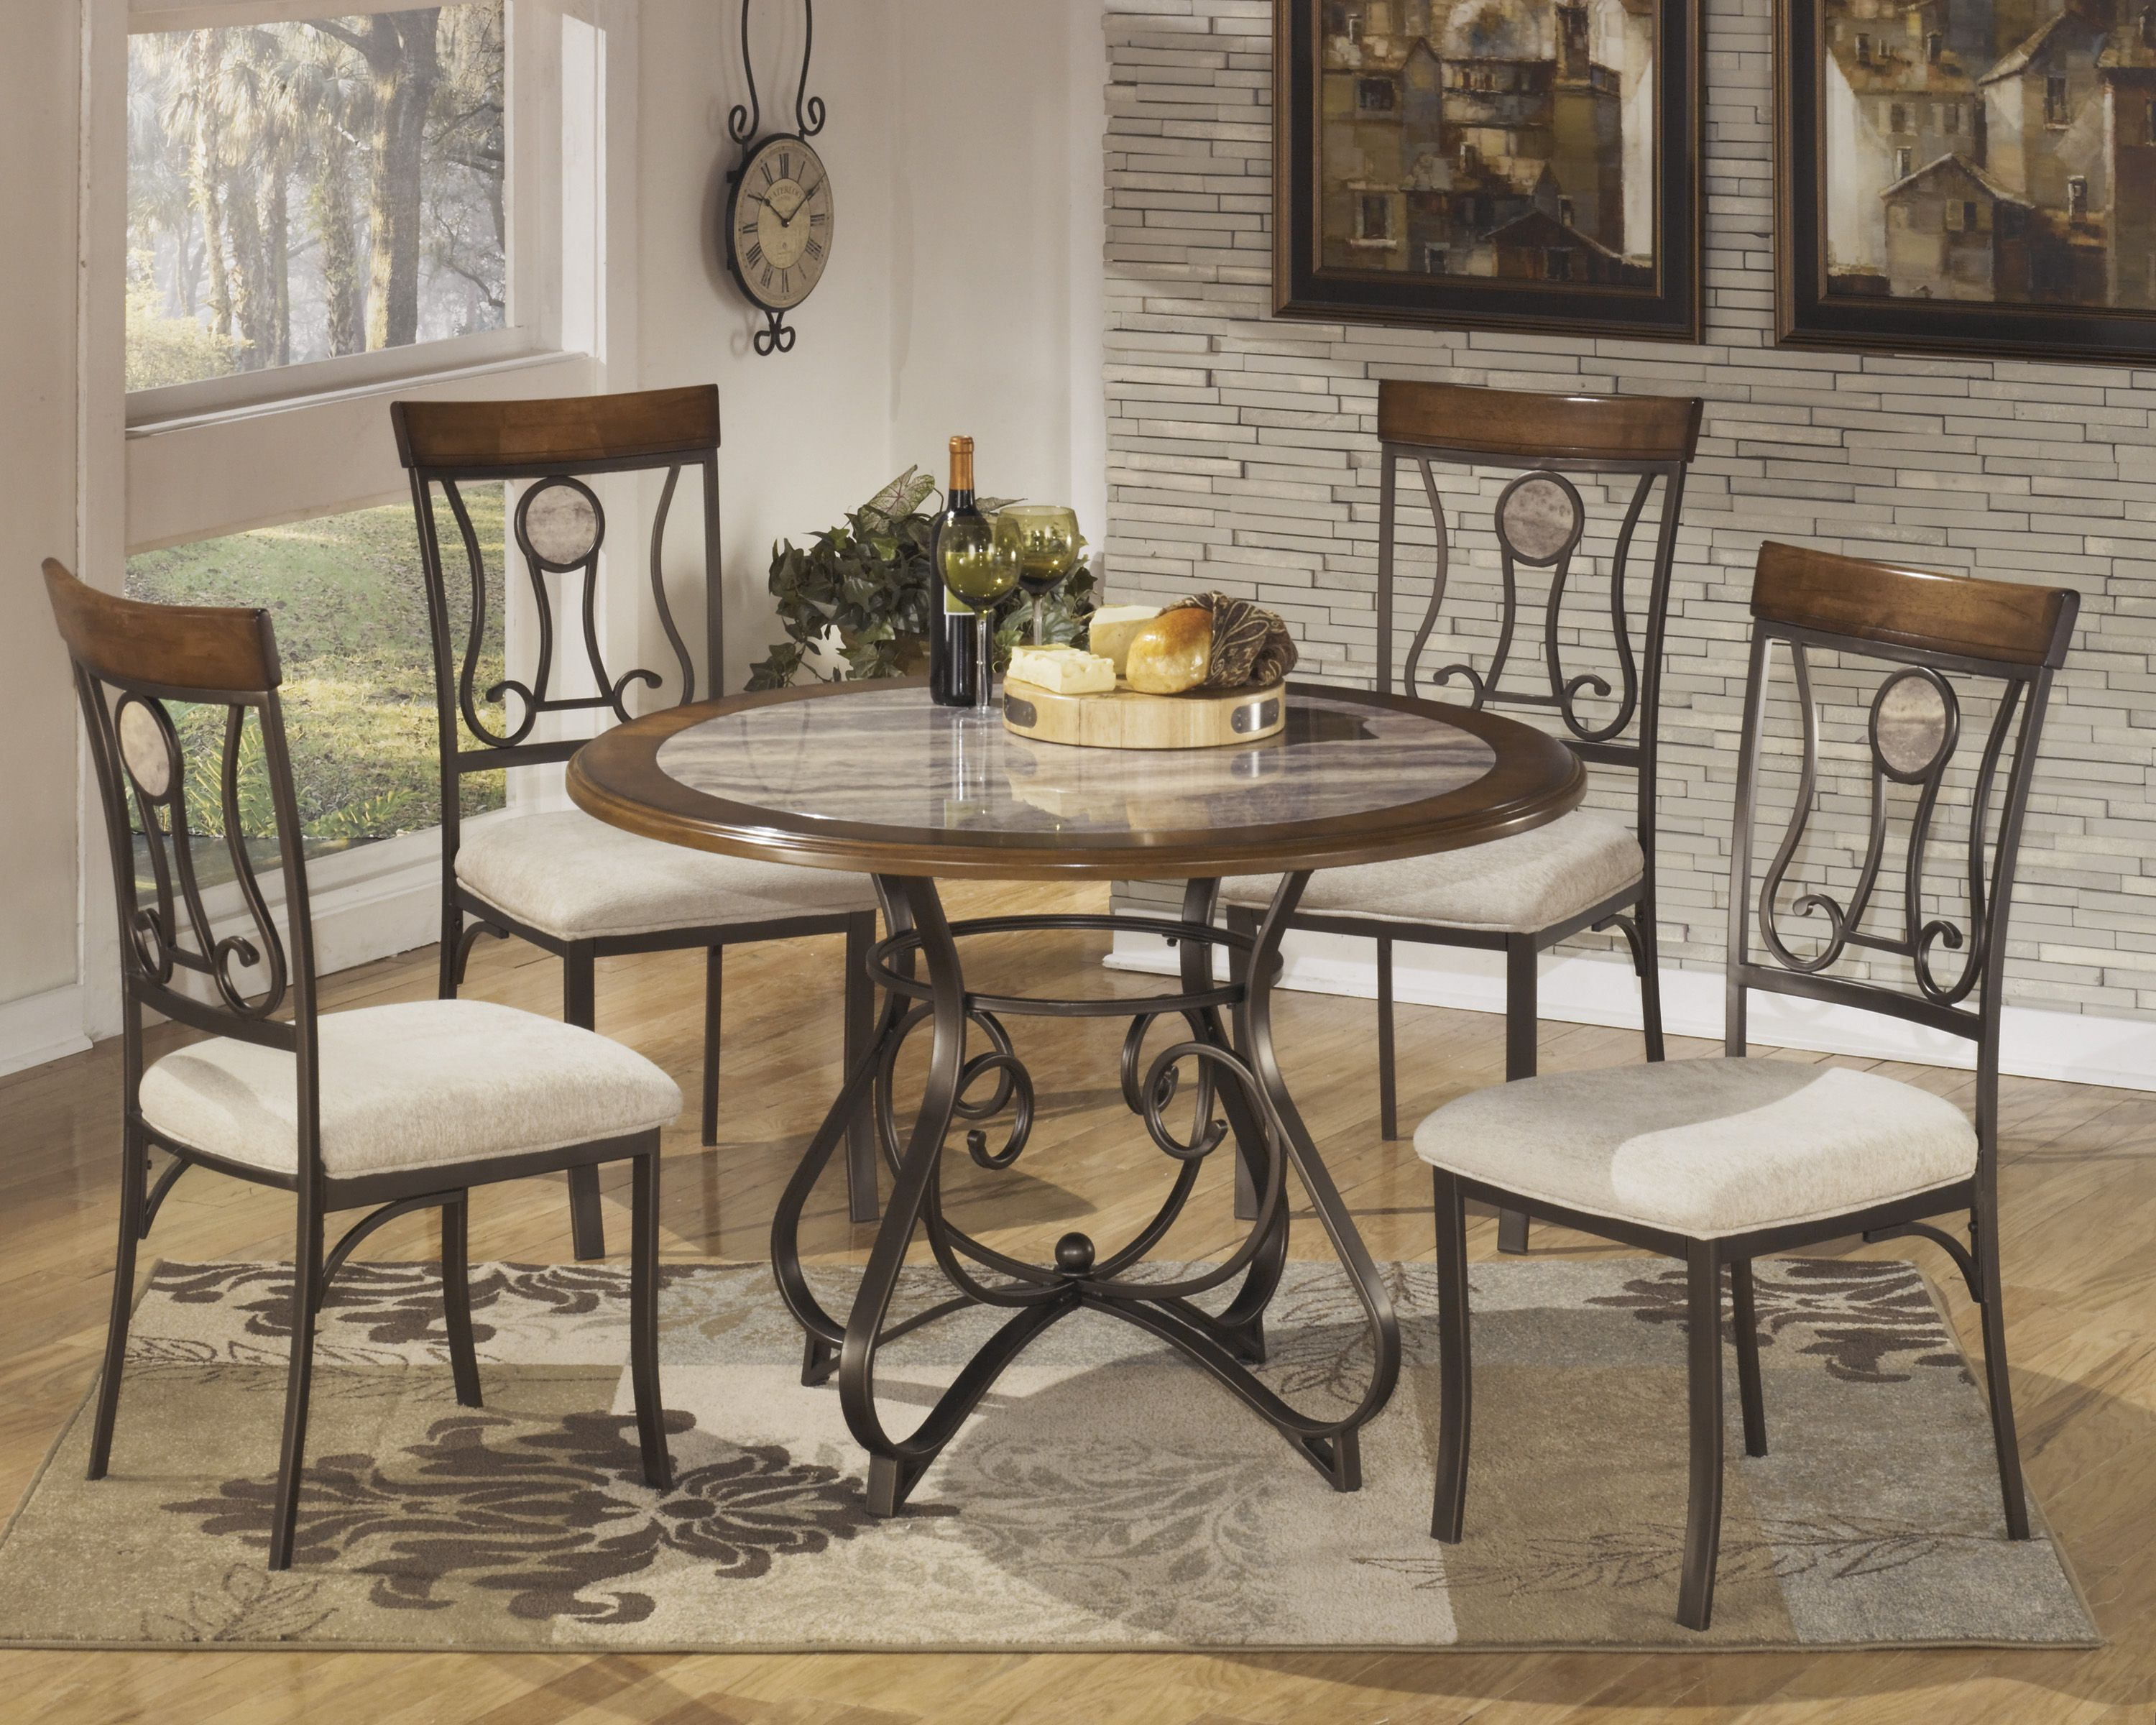 "The 'hopstand' 44"" Round Table & 4 Chairs  Dining For Smaller Delectable Dining Room Table Sets For Small Spaces Review"